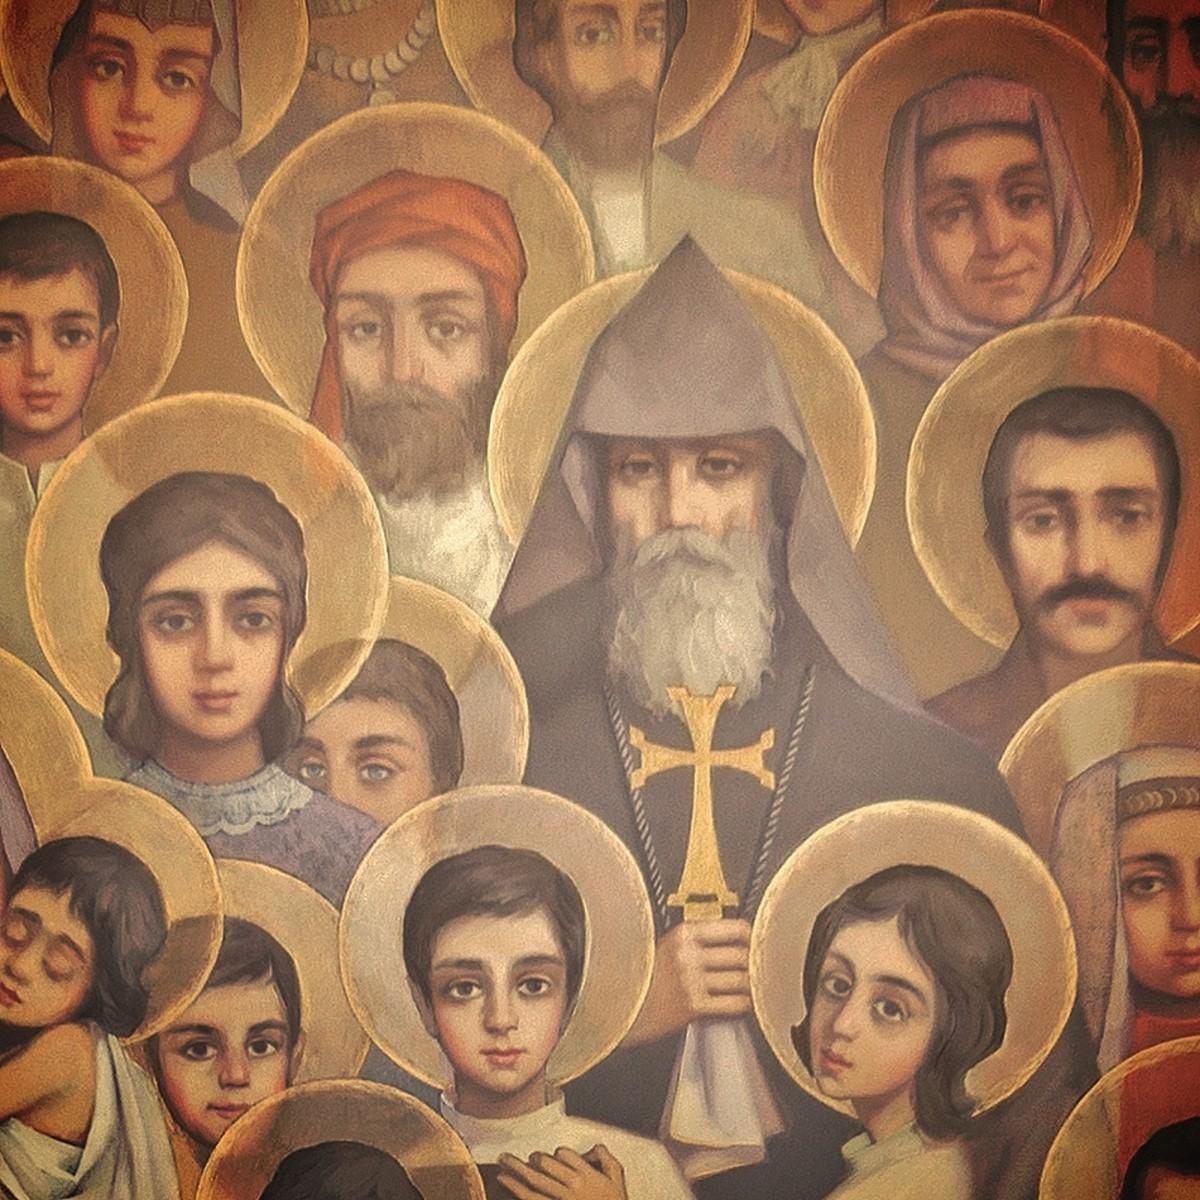 Christianity is a big part of Armenian cultural anthropology